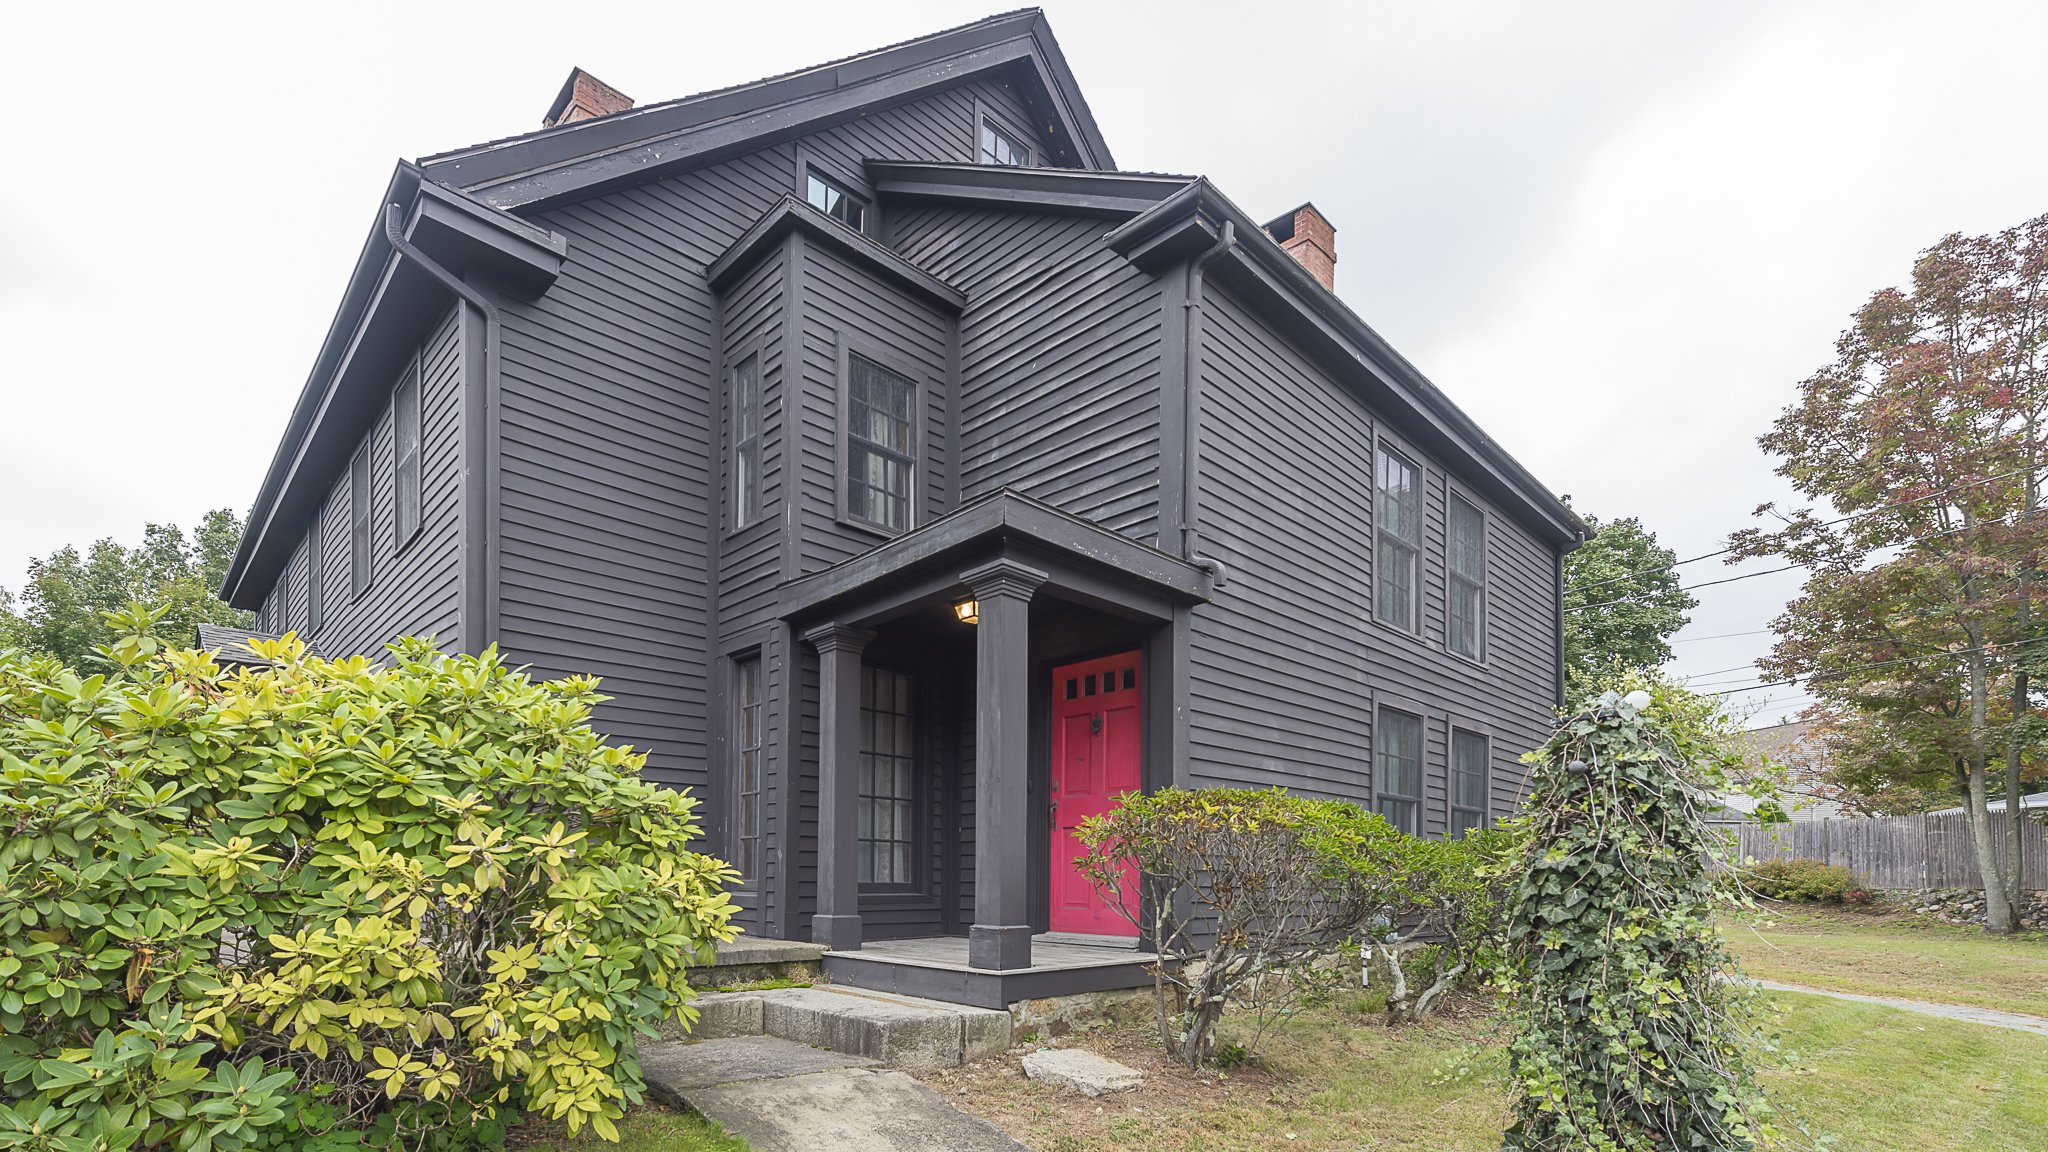 """MANDATORY CREDIT: J Barrett & Company/Cover Images Just in time for Halloween... a house owned by a Suffolk-born man hanged for witchcraft has gone on sale. The $600,000 property in Peabody, Massachusetts, is infamous as having been where John Proctor lived, a victim of the Salem witch trials. The 3,910sq-foot home was built in 1638 when it was part of Salem. Proctor, who was brought to America aged three, was a landowner in the Massachusetts Bay Colony. He was convicted and hanged for witchcraft in 1692, after being accused of wrongdoings including forcing a former servant to touch the """"Devil's Book"""". His life influenced Arthur Miller's play The Crucible, and he was portrayed by Daniel Day-Lewis in a 1996 film. Real estate agent Joe Cipoletta, of J. Barrett and Co., says the six-bedroom property is """"a grand example of Colonial and American History"""" and features """"period detail with the functionality of today's needs."""" Further description details include: """"Large eat in kitchen with plenty of workspace. The dining room can accommodate your largest holiday gathering. All the bedrooms offer storage and ample space to relax. Enjoy the summers around your oversized inground pool."""" John Proctor's House has been owned by a family for the past 30 years, however, the owner died 8 October at the age of 90. Michael Bonfanti, vice president of the Peabody Historical Society, told The Salem News: """"The Peabody Historical Society is looking to see if they can financially handle it and that's what we are in the process of doing."""" Where: Peabody, Massachusetts, United States When: 01 Oct 2018 Credit: J Barrett & Company/Cover Images **All usages and enquiries, please contact info@cover-images.com - +44 (0)20 3397 3000MANDATORY CREDIT: J Barrett & Company/Cover Images. Only for use in this story. Editorial Use Only. No stock, books, advertising or merchandising without photographer's permission**"""